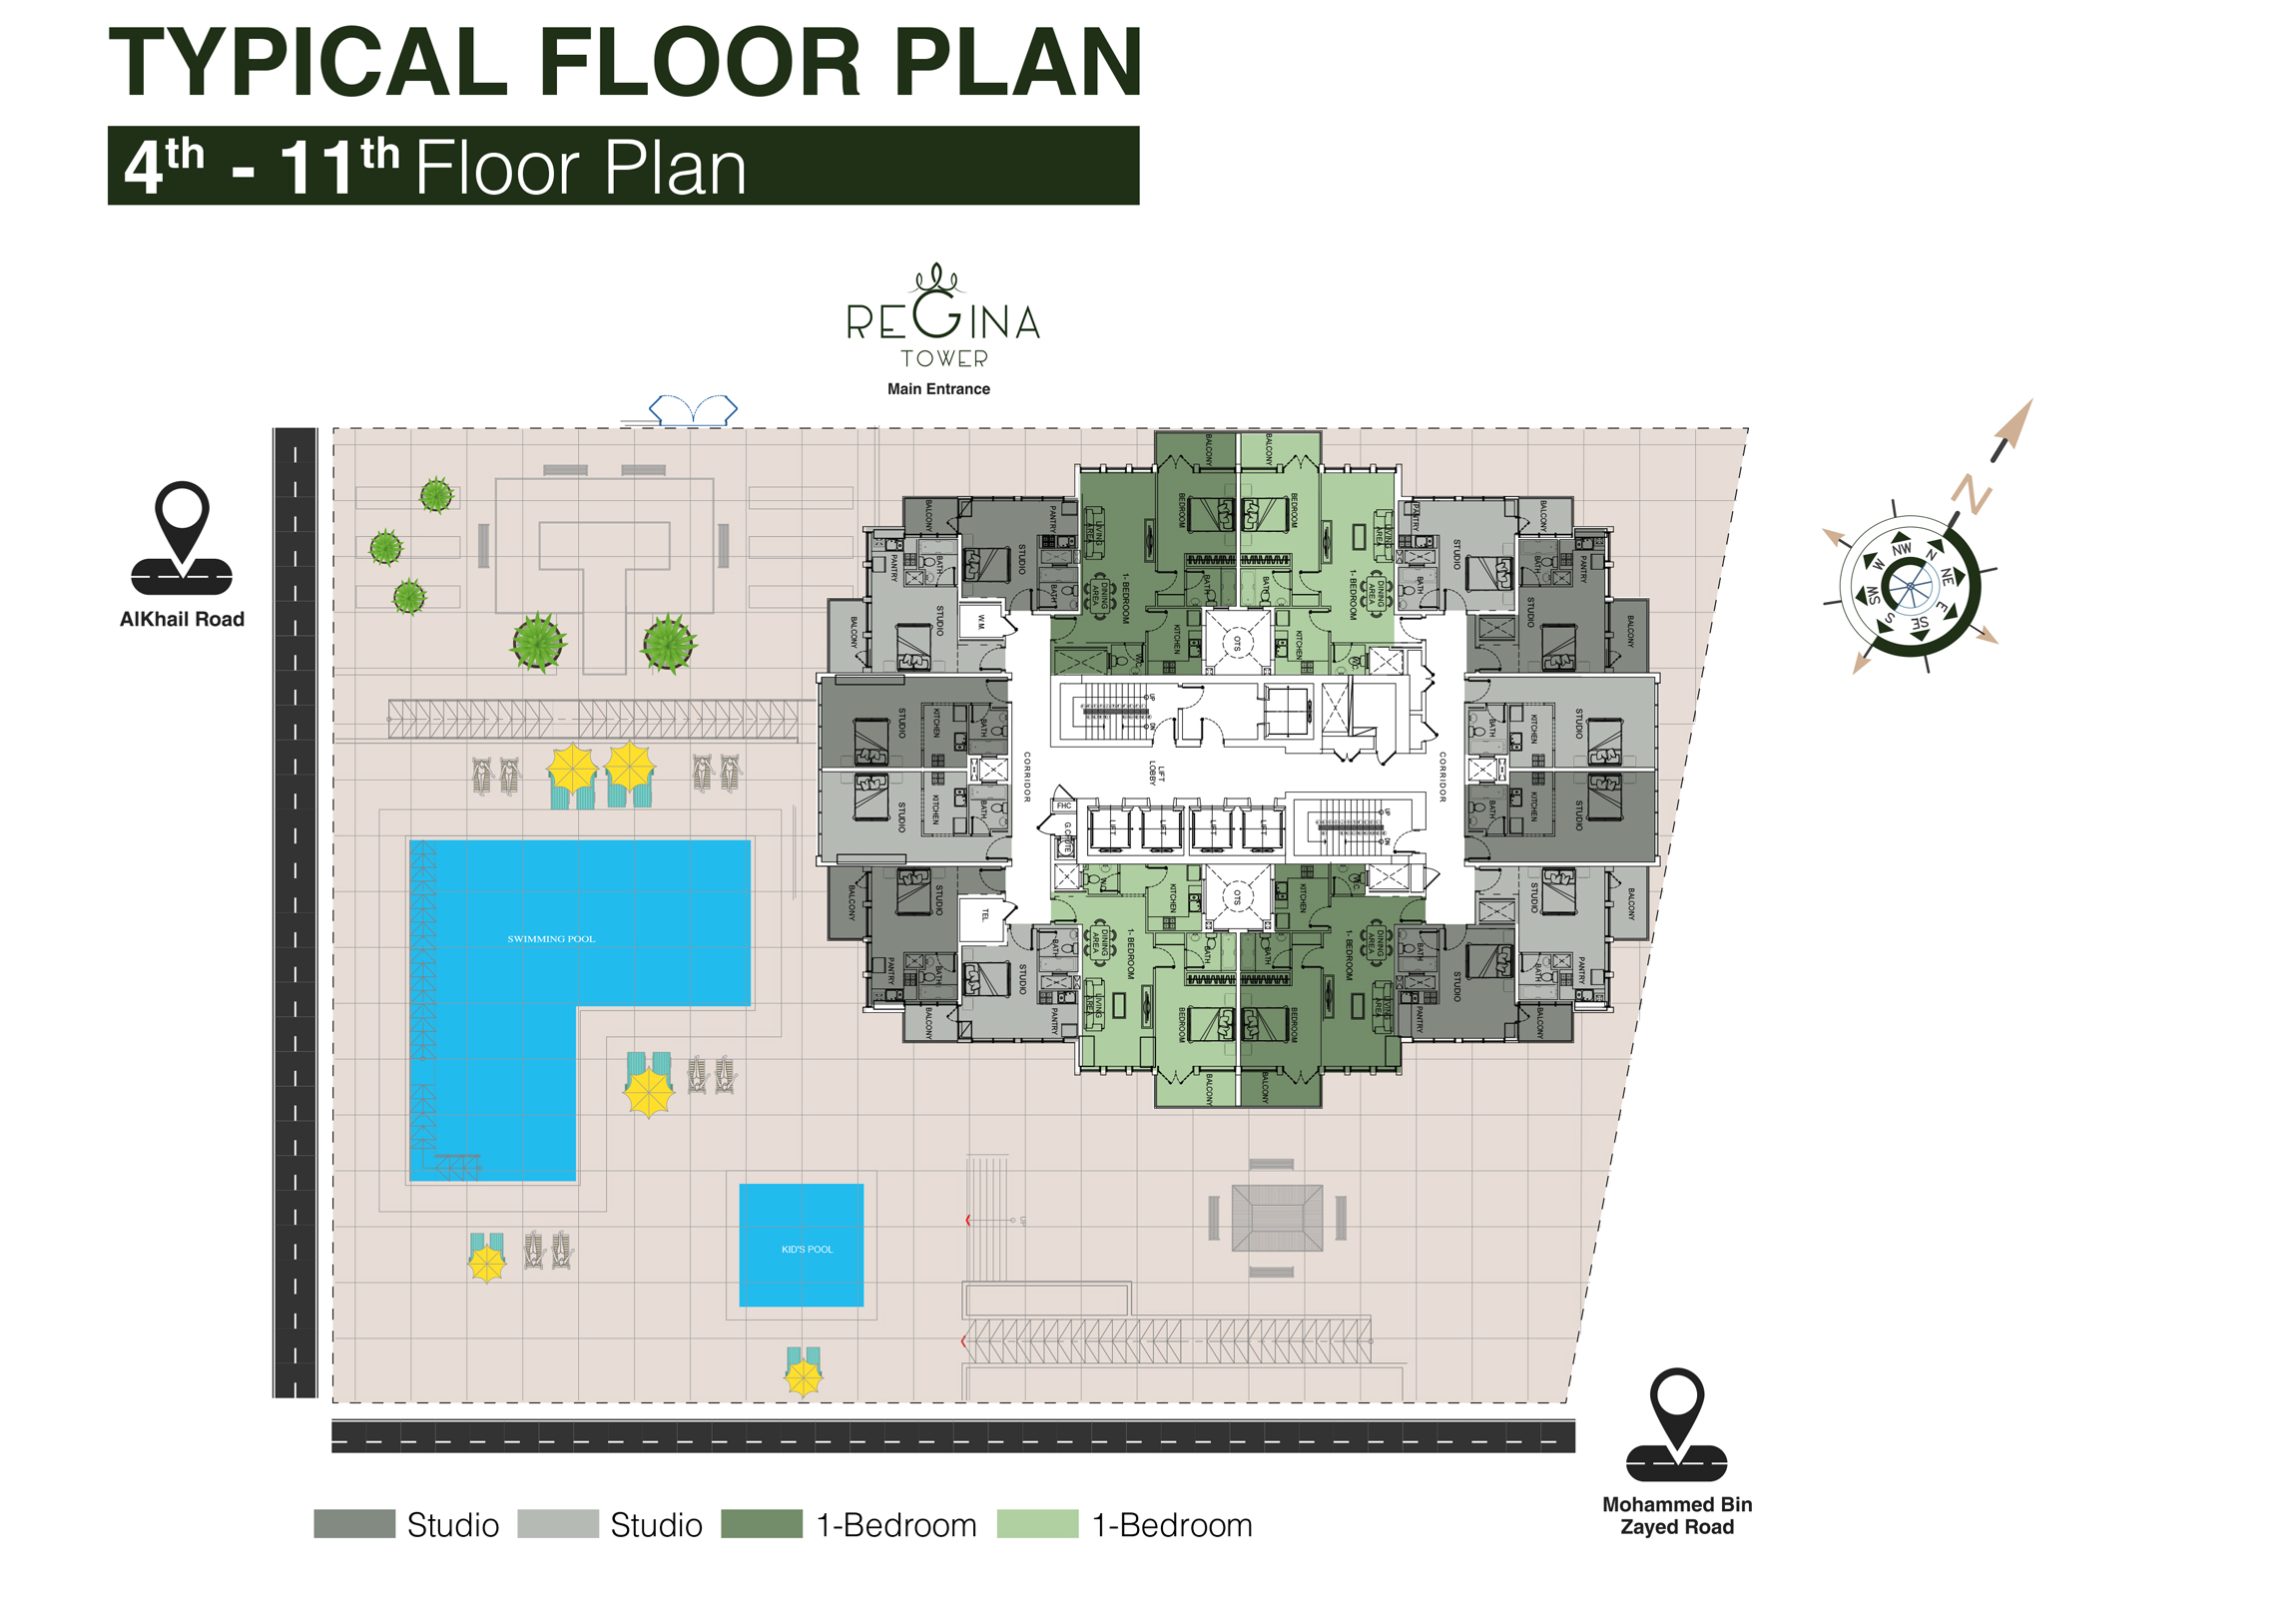 Typical Floor Plan 4th to 11th Floor